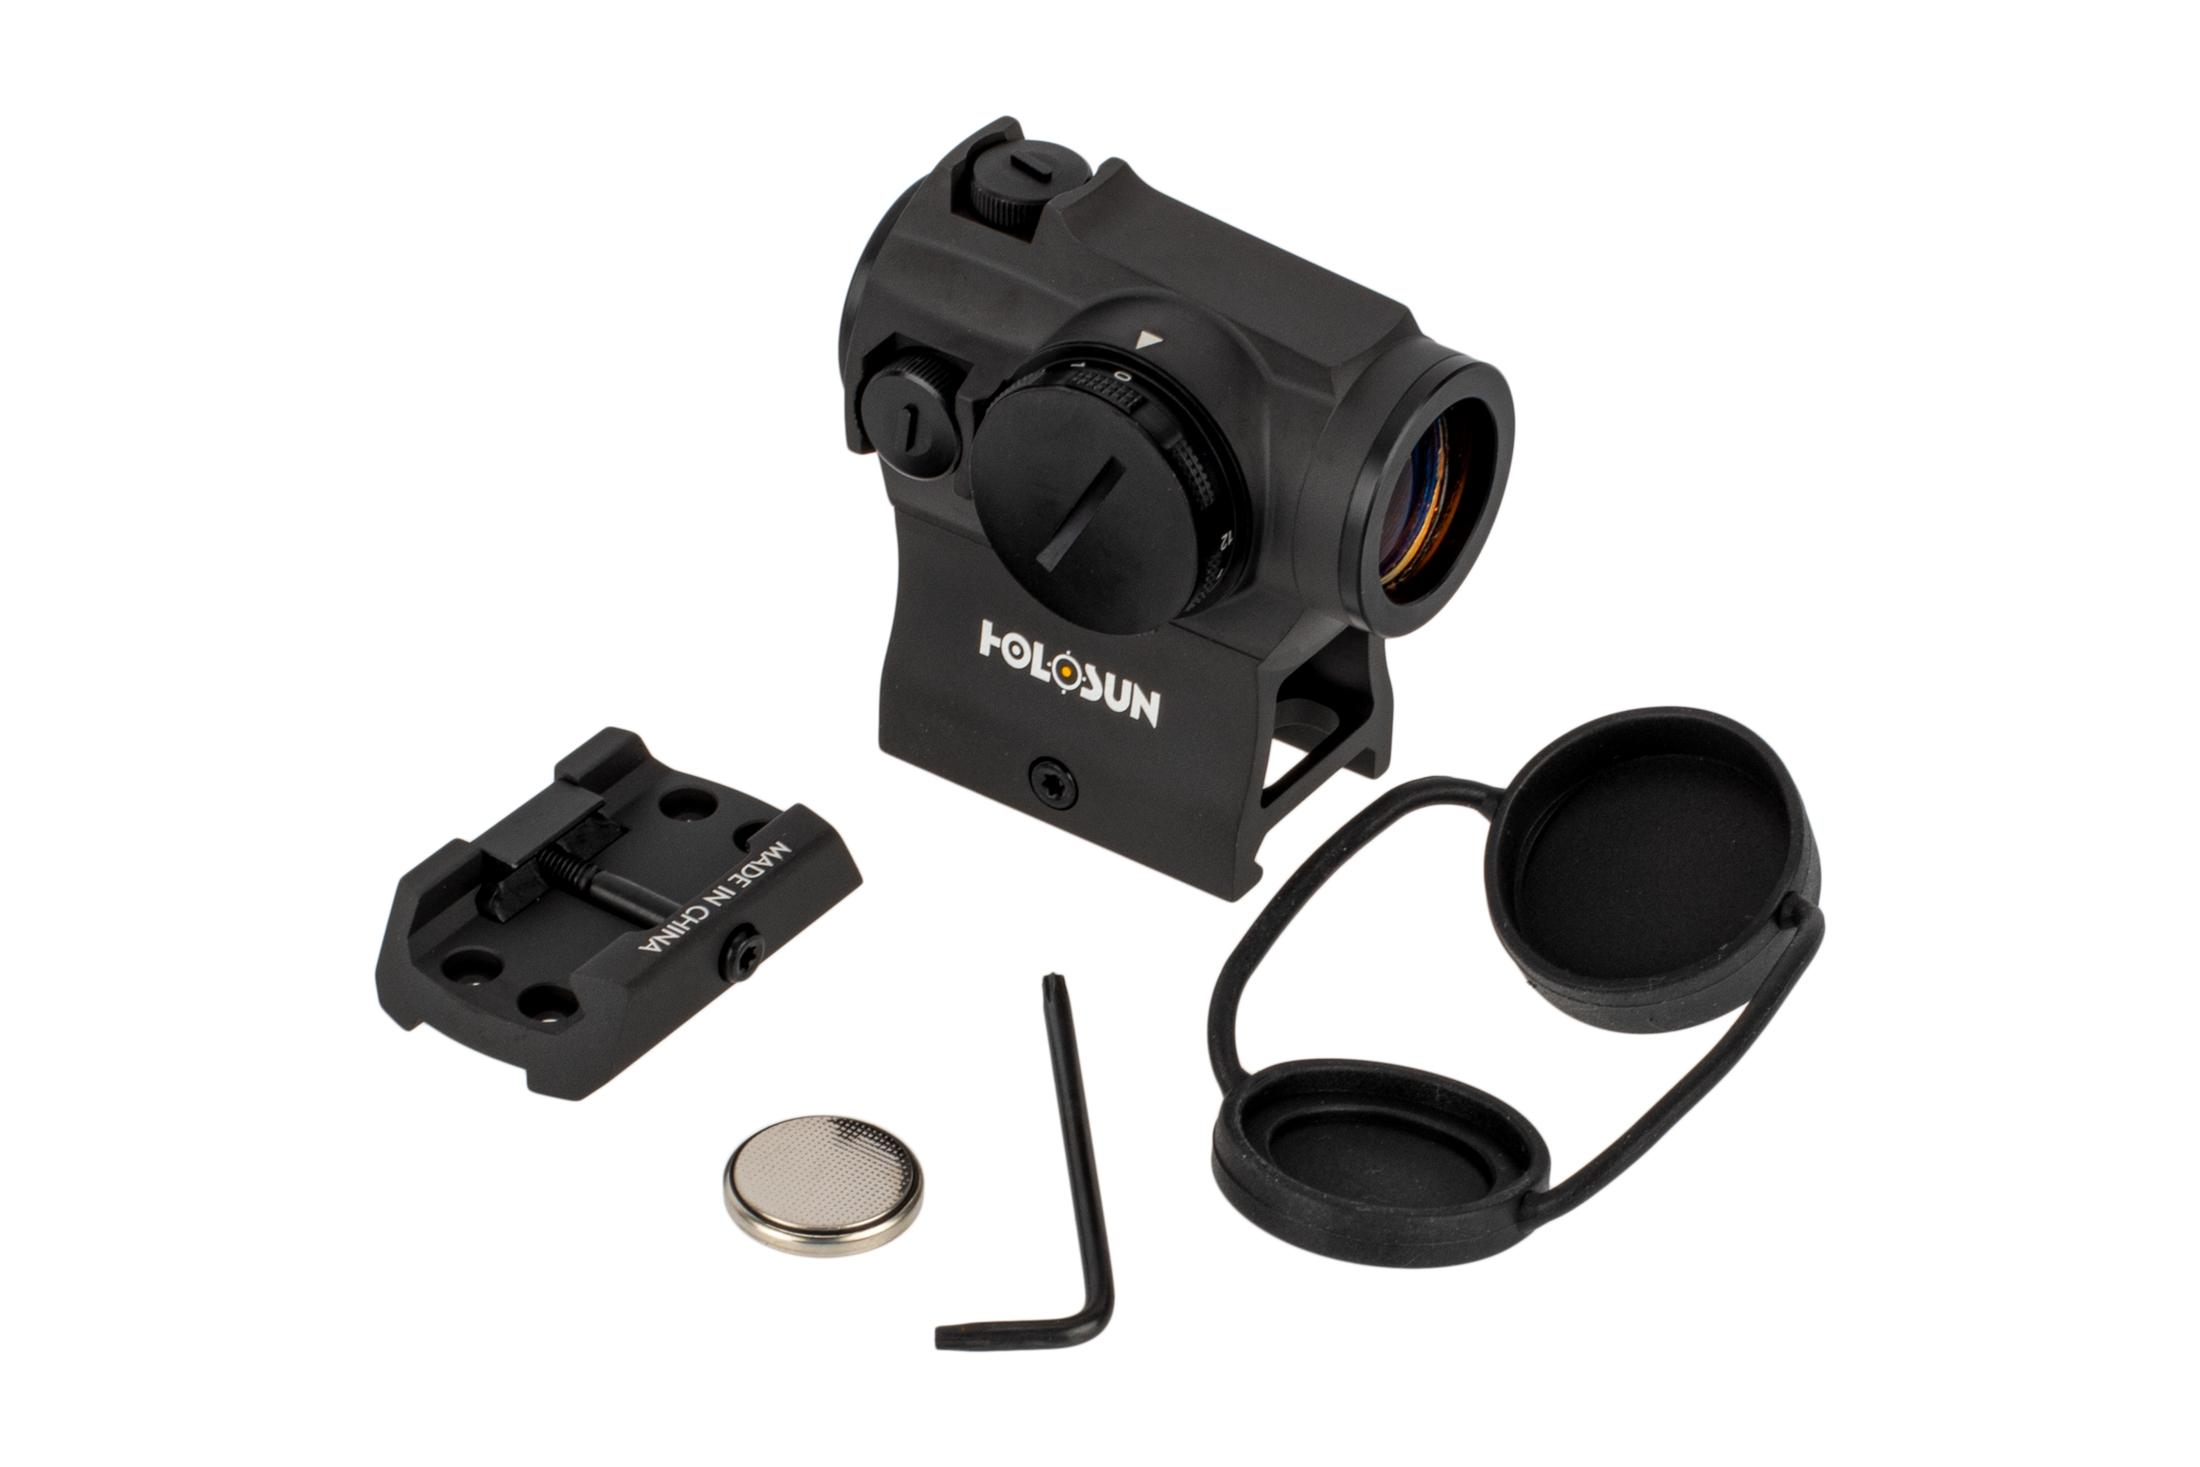 The Holosun HE403R-GD micro dot sight comes with a battery and lens covers